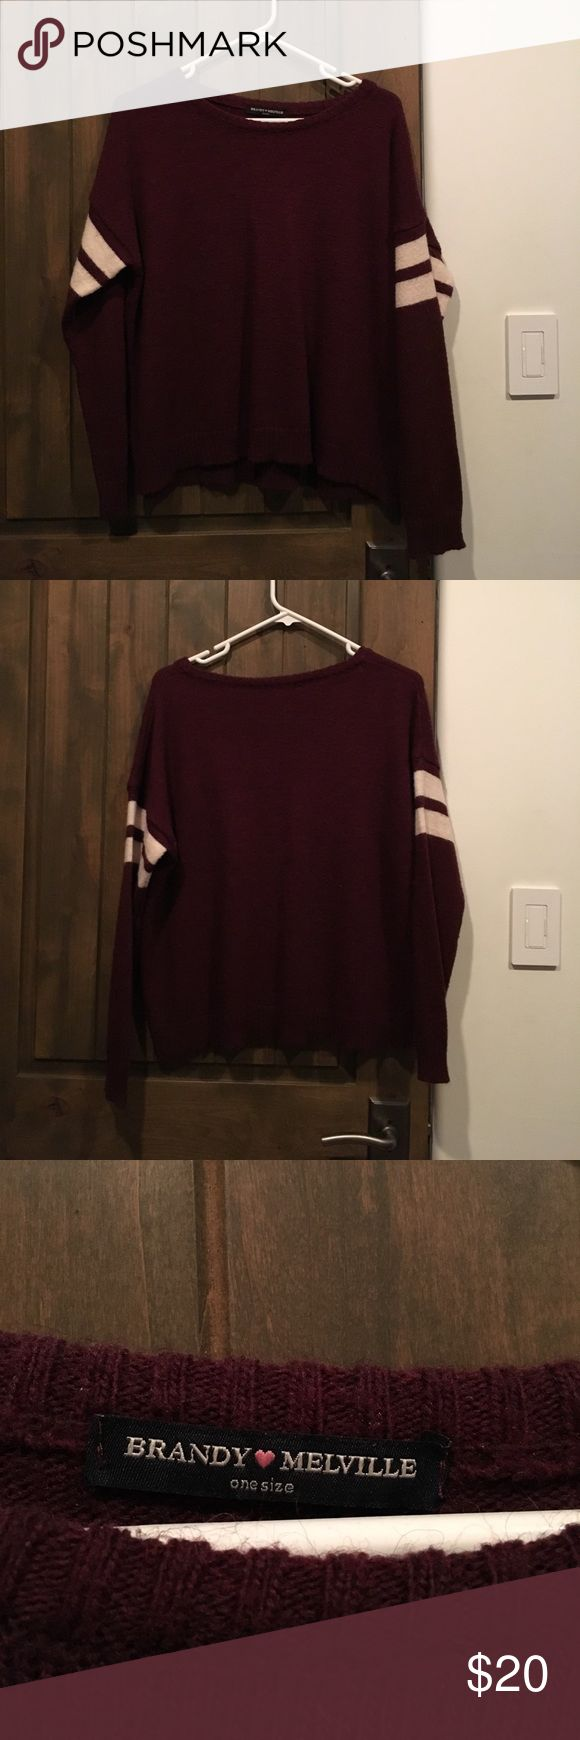 Maroon and White Brandy Melville Sweater Worn once. really good condition. soft material Brandy Melville Sweaters Crew & Scoop Necks